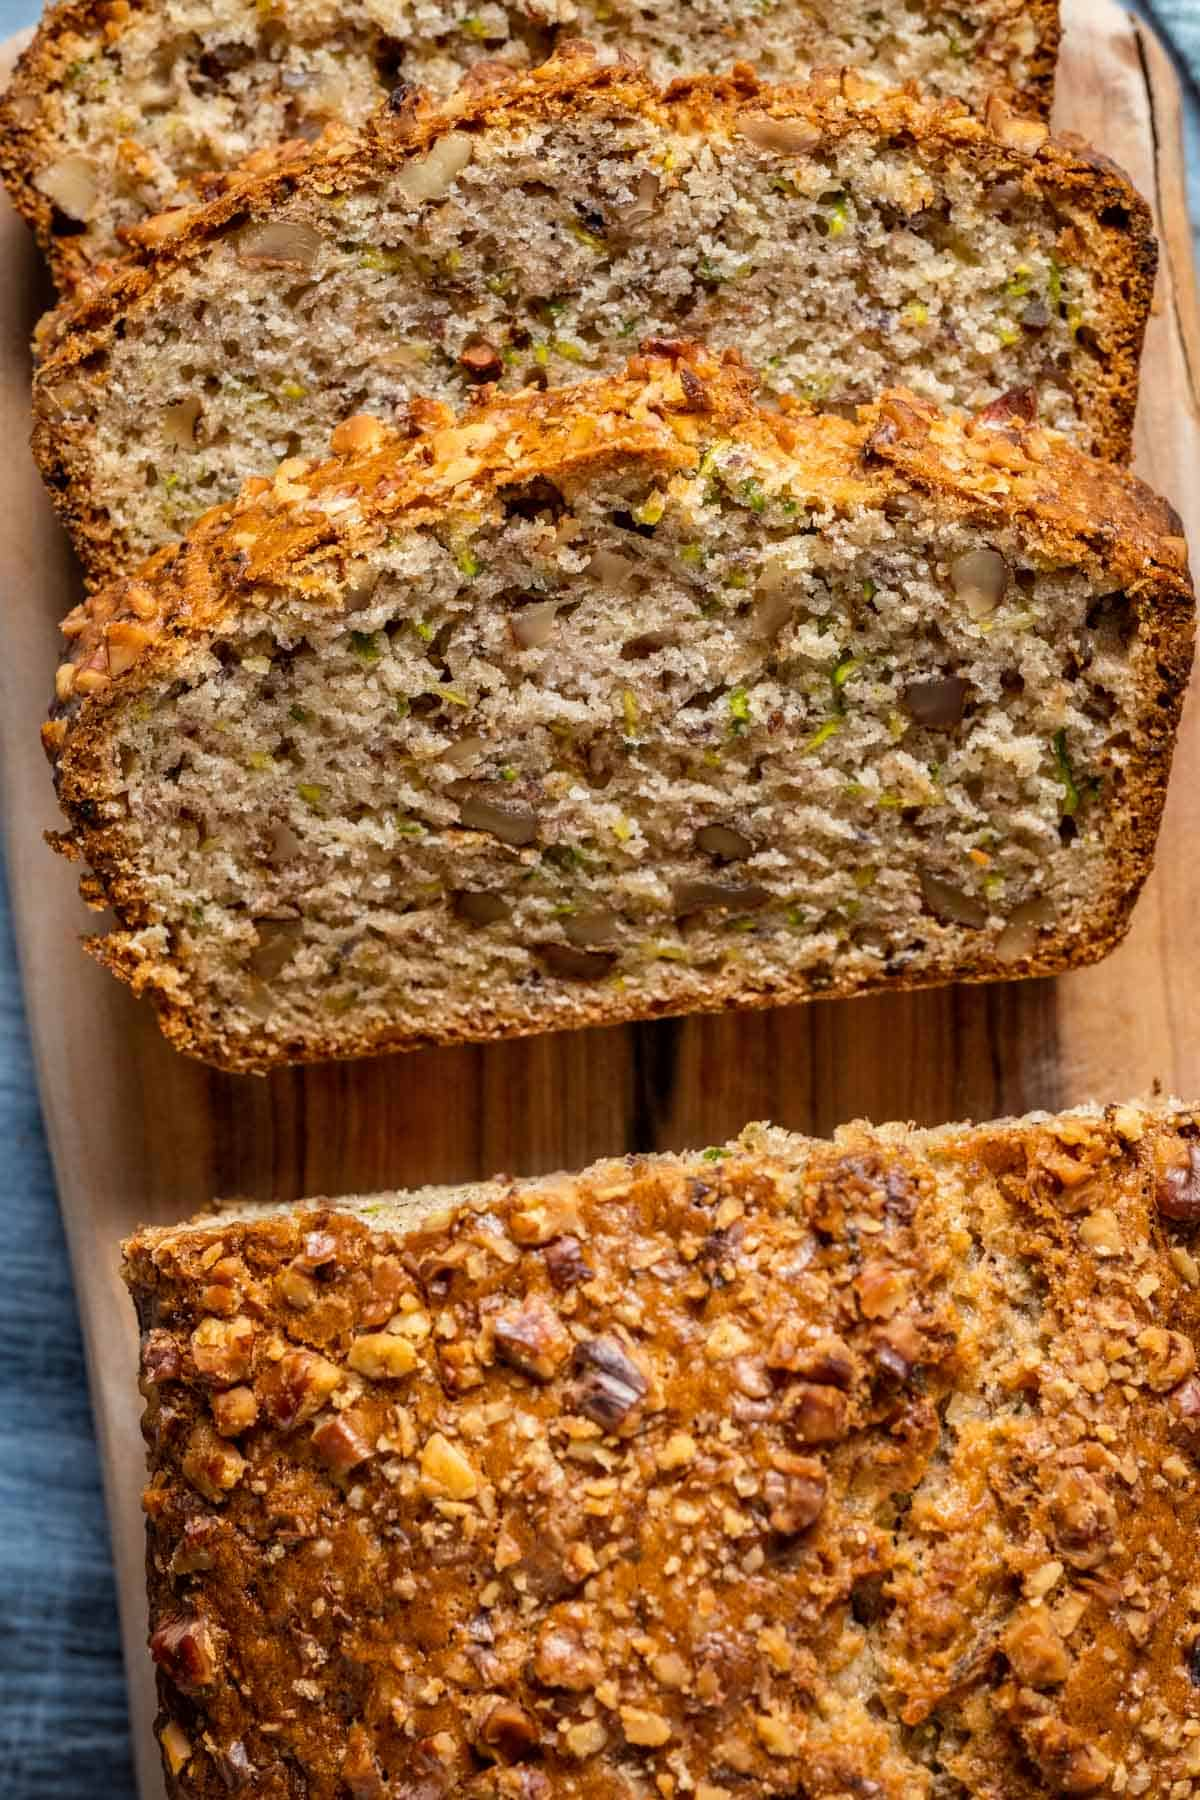 Sliced loaf of vegan zucchini bread on a wooden board.